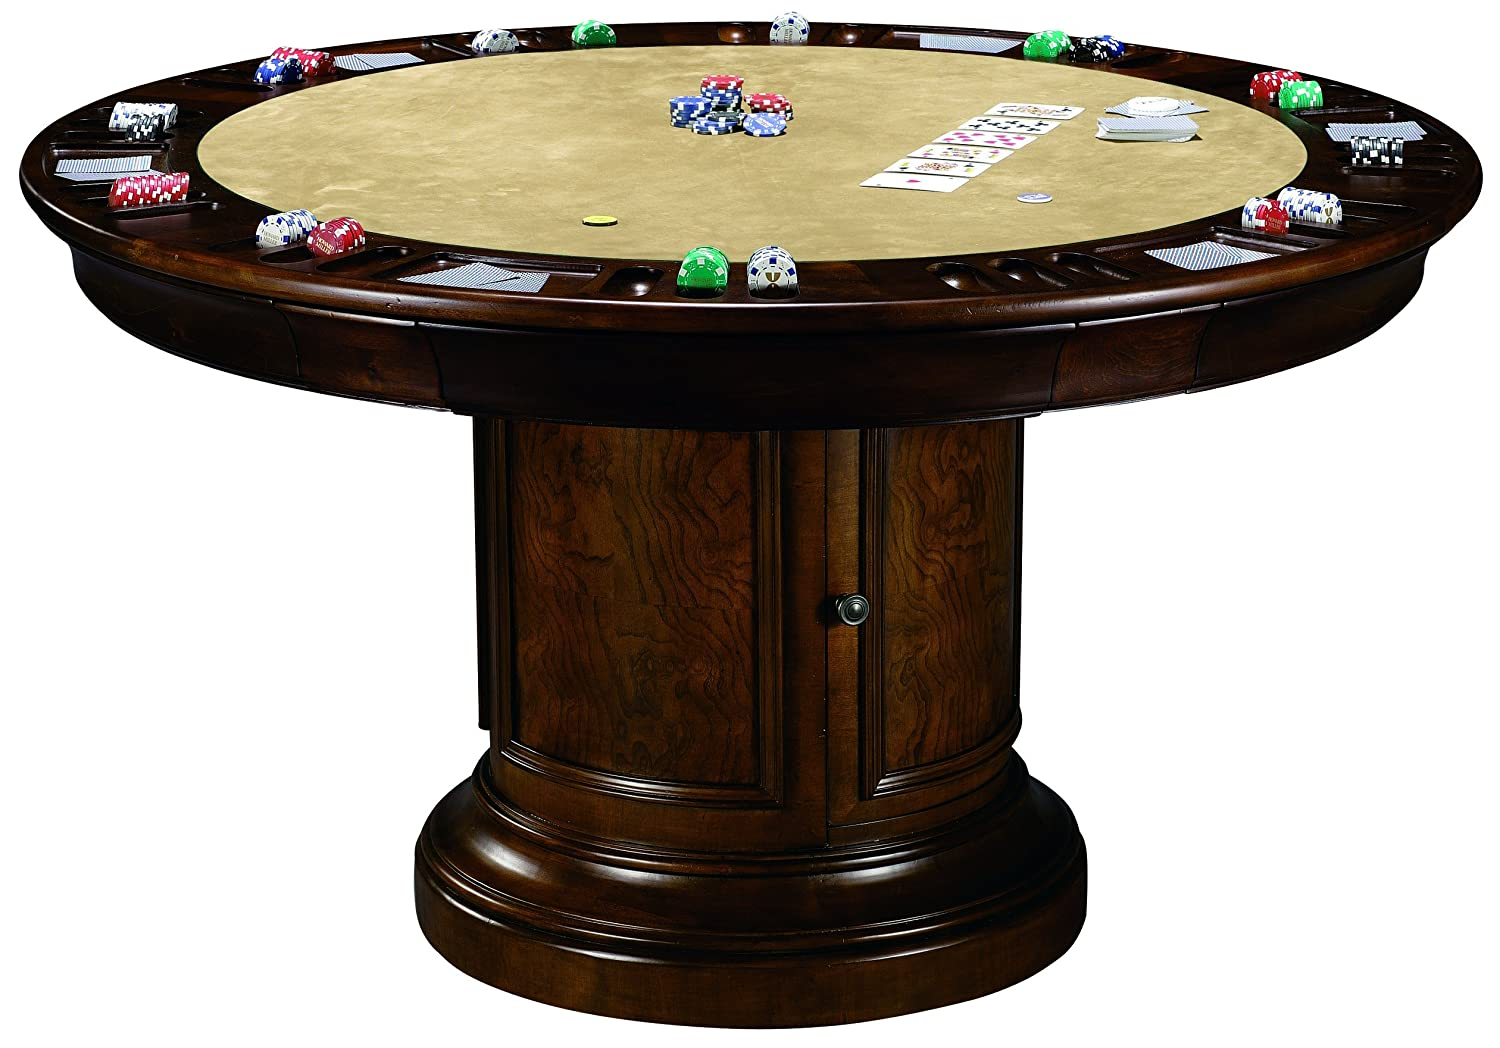 Amazon.com: Howard Miller 699-012 Ithaca Game Table: Kitchen & Dining